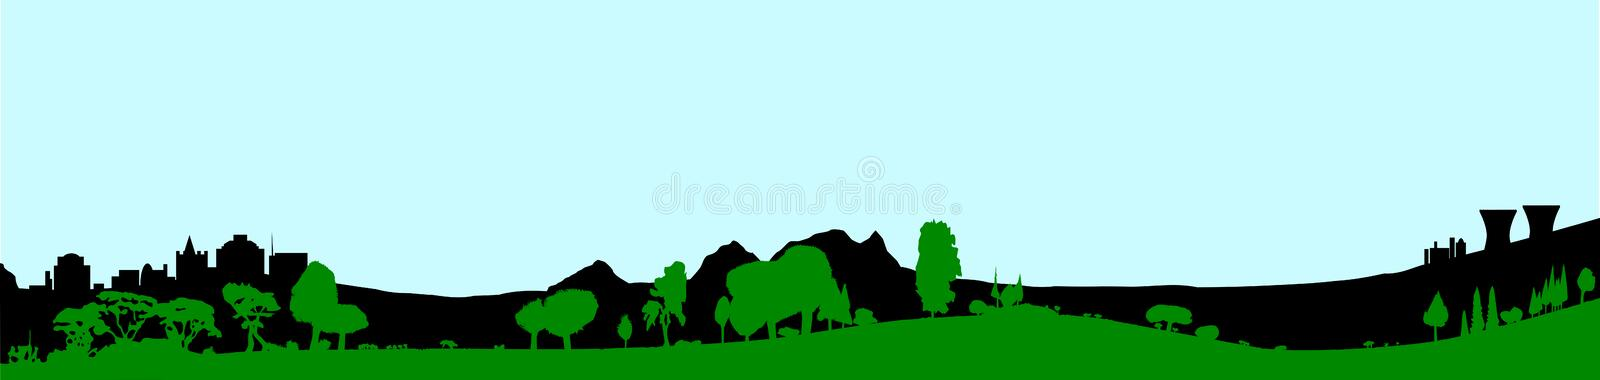 Green Wooded Foreground With A Blue Sky. Silhouette of a wooded foreground set on a hill background with buildings and a pale sky stock illustration